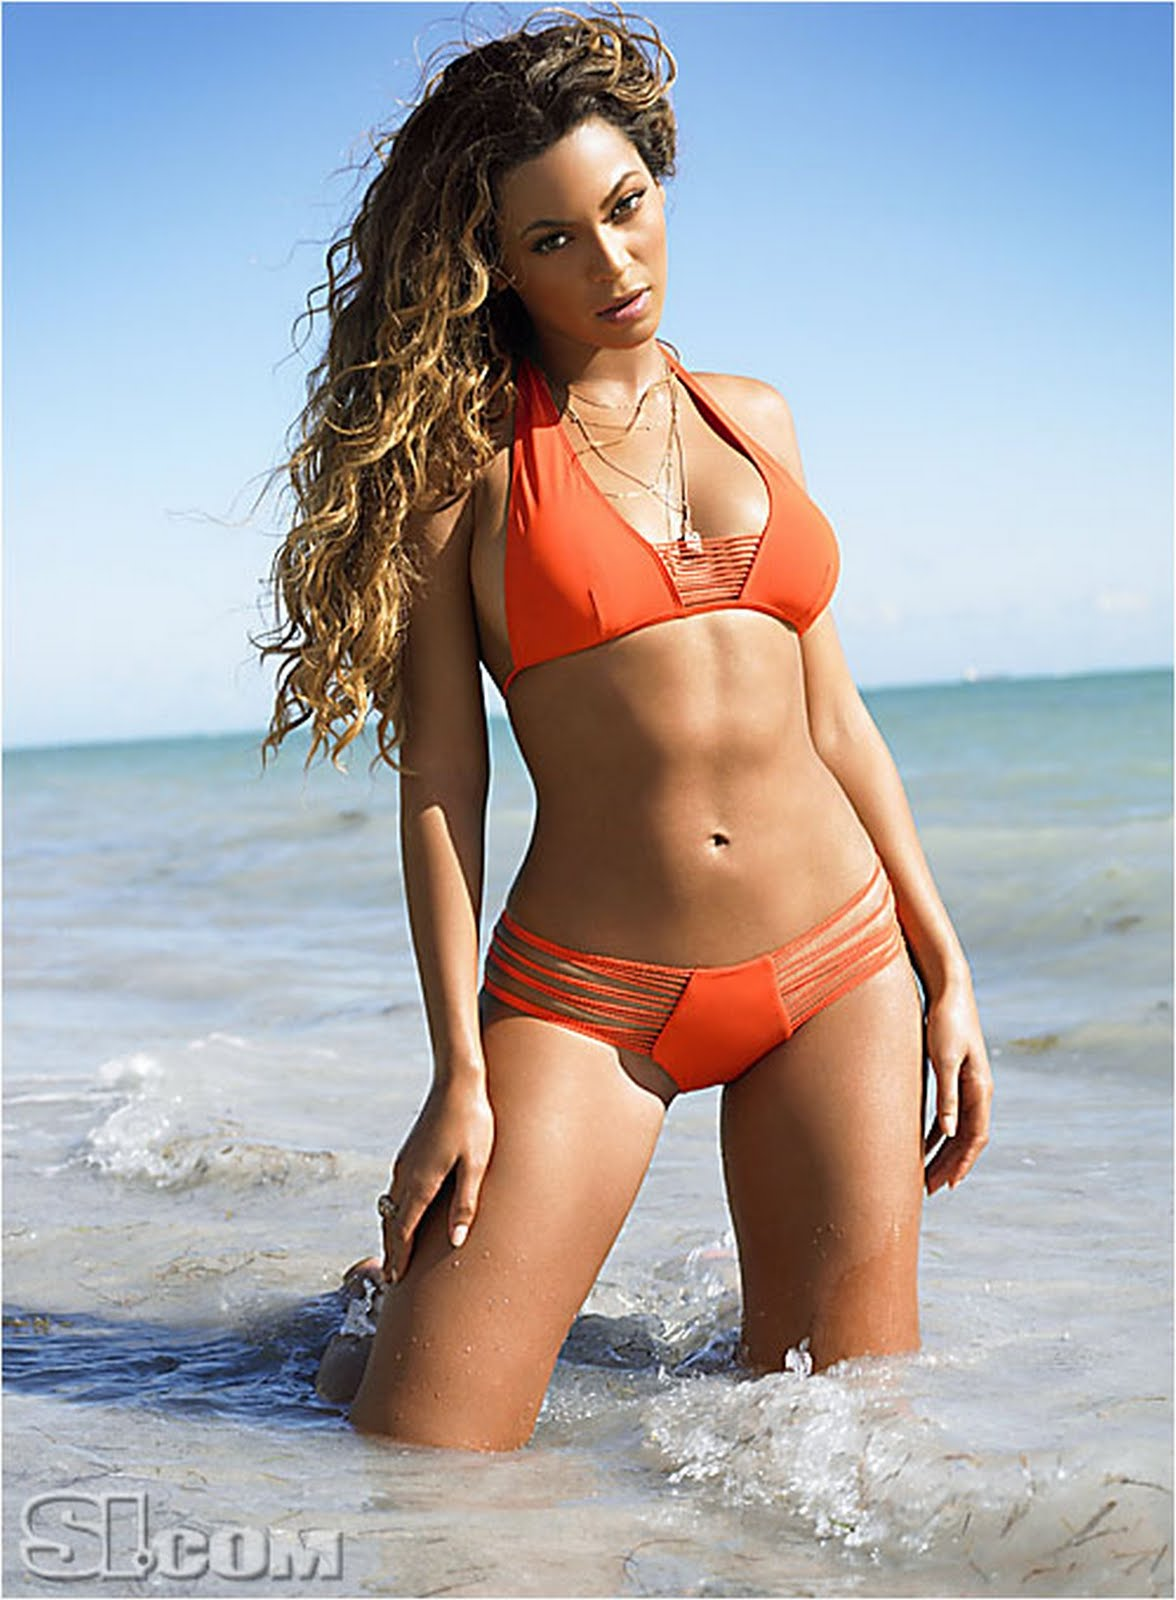 Beyonce Knowles Bikini Bodies Pic 1 of 35